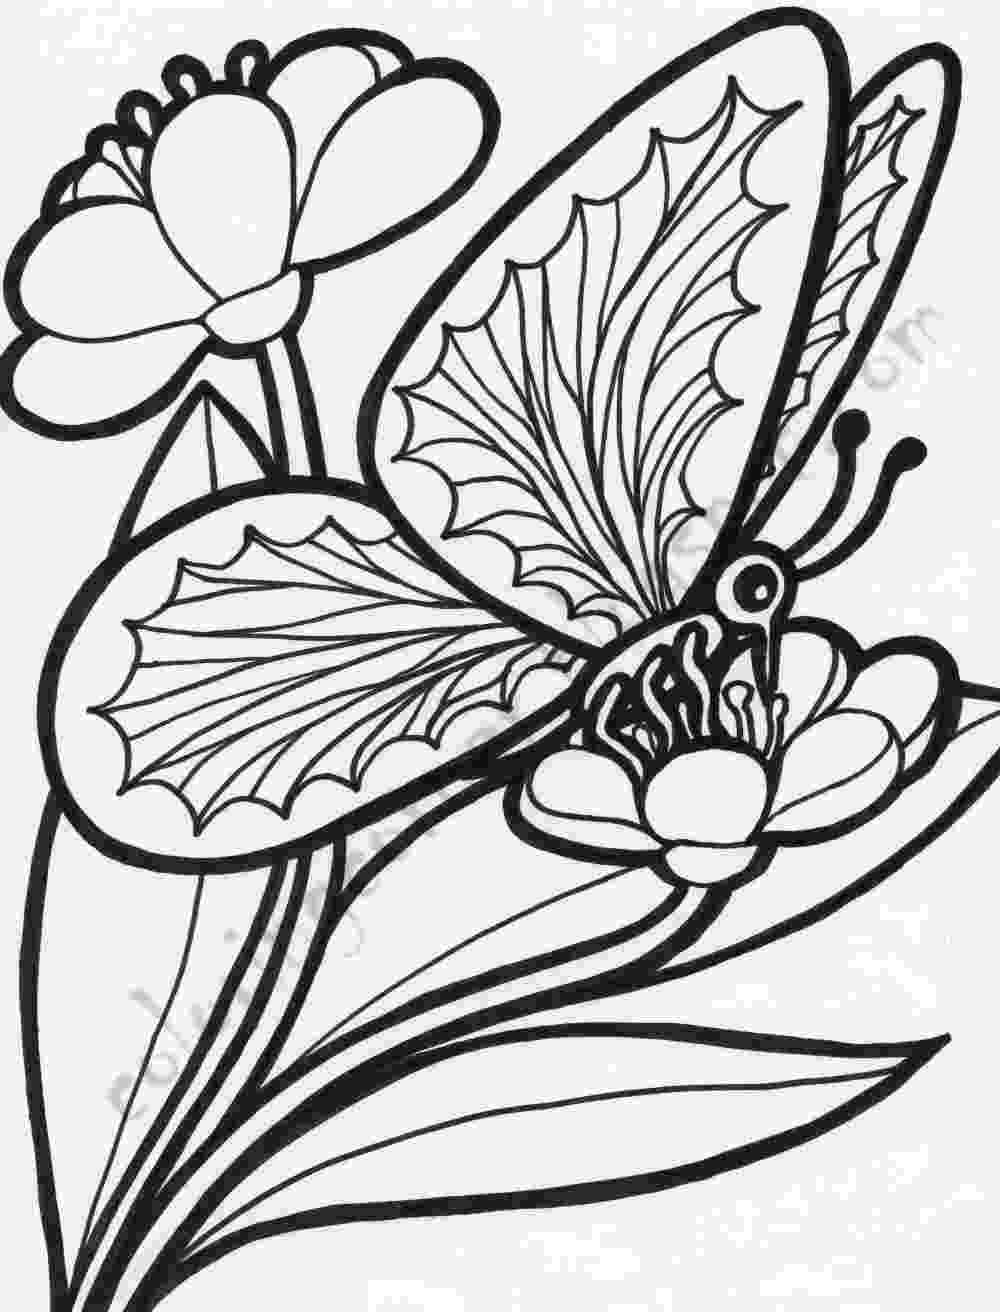 pictures of flowers coloring pages flowers to download for free flowers kids coloring pages pages coloring of pictures flowers